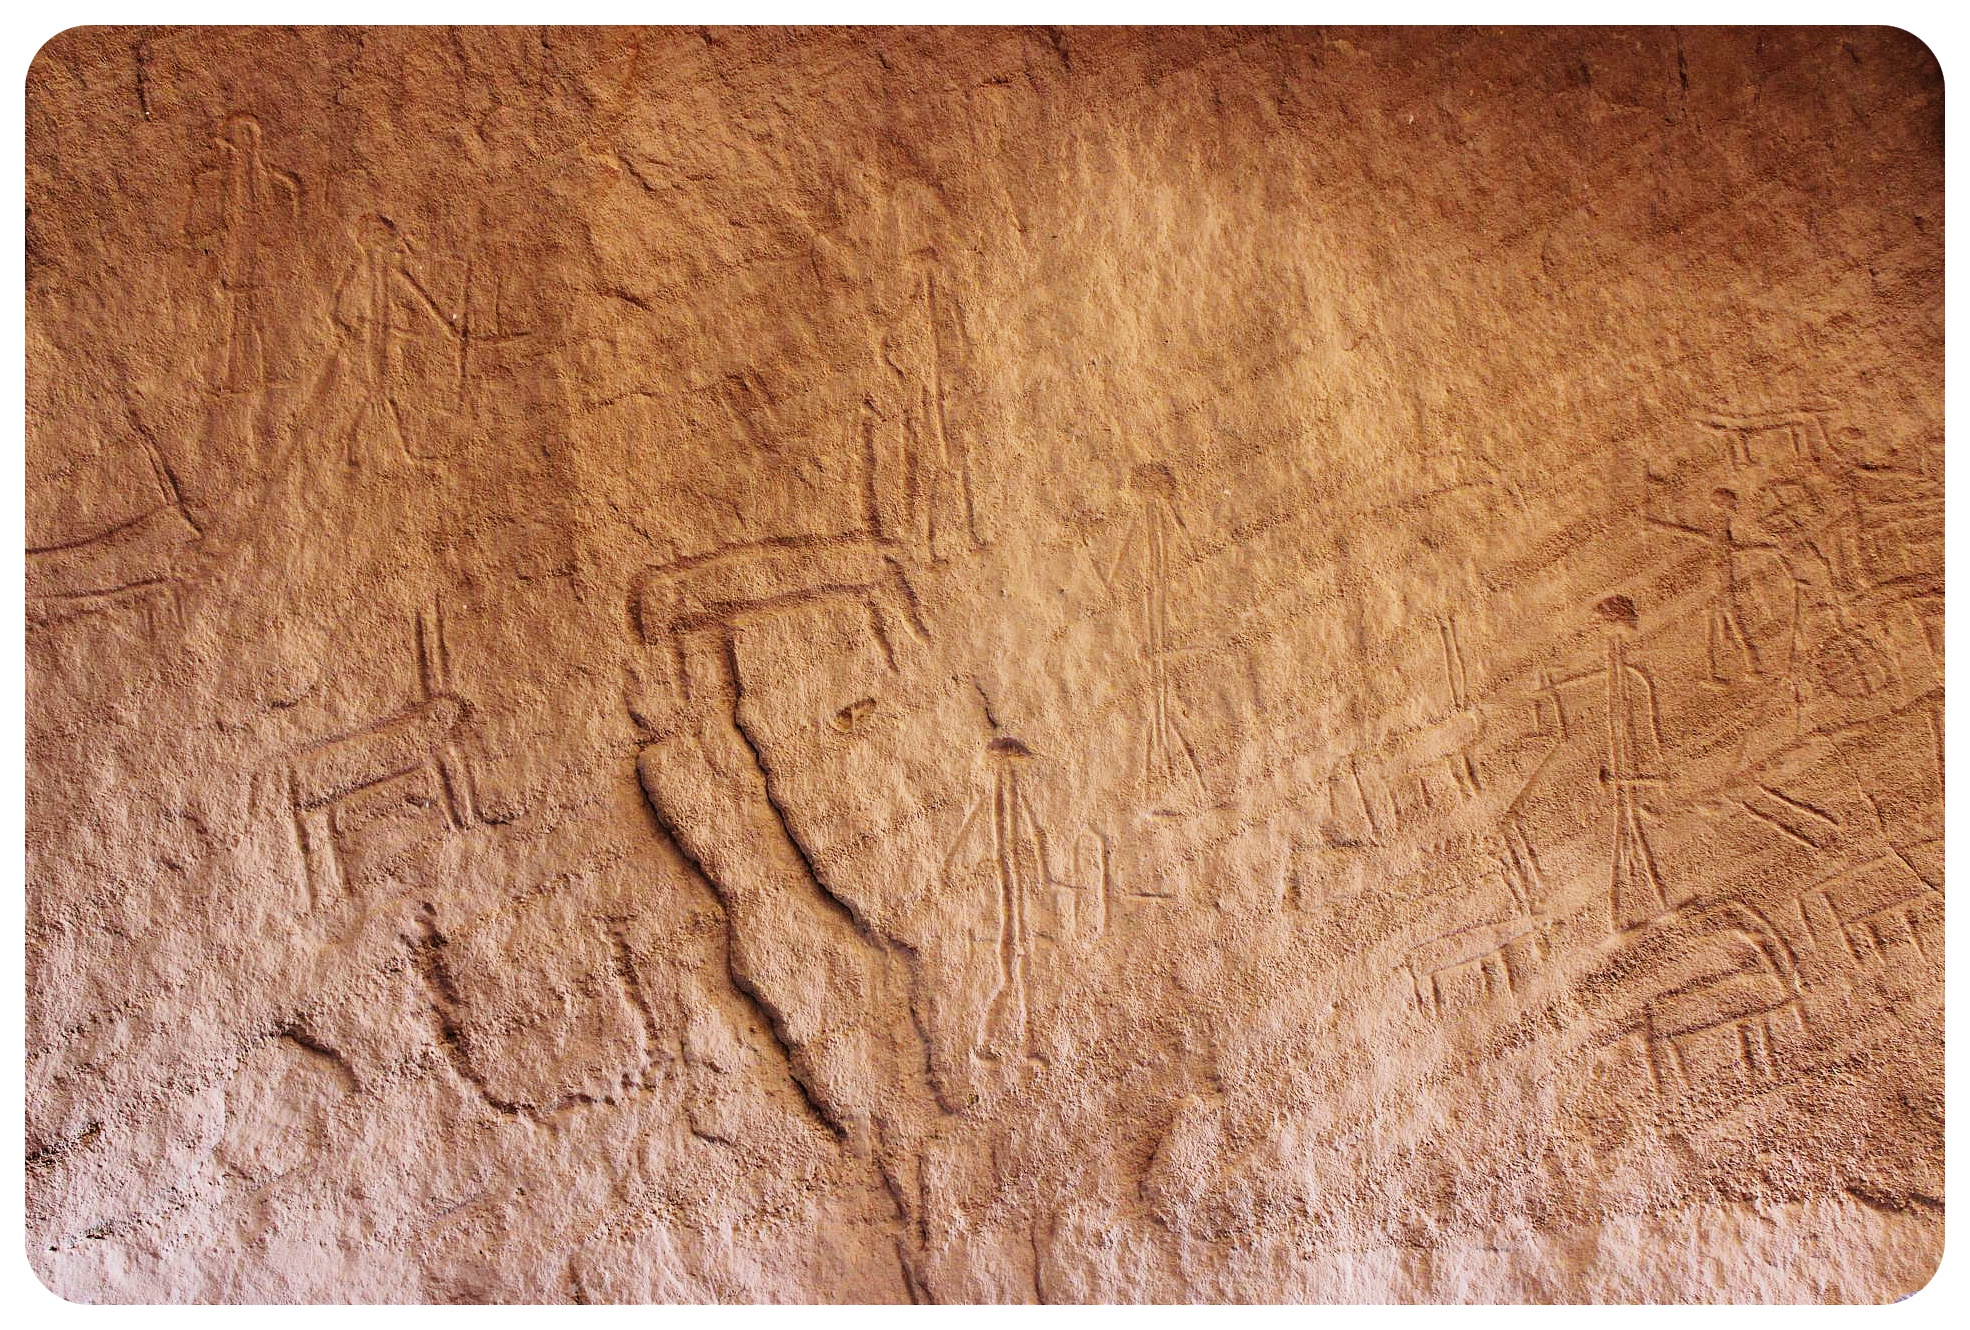 timna park israel cave drawings